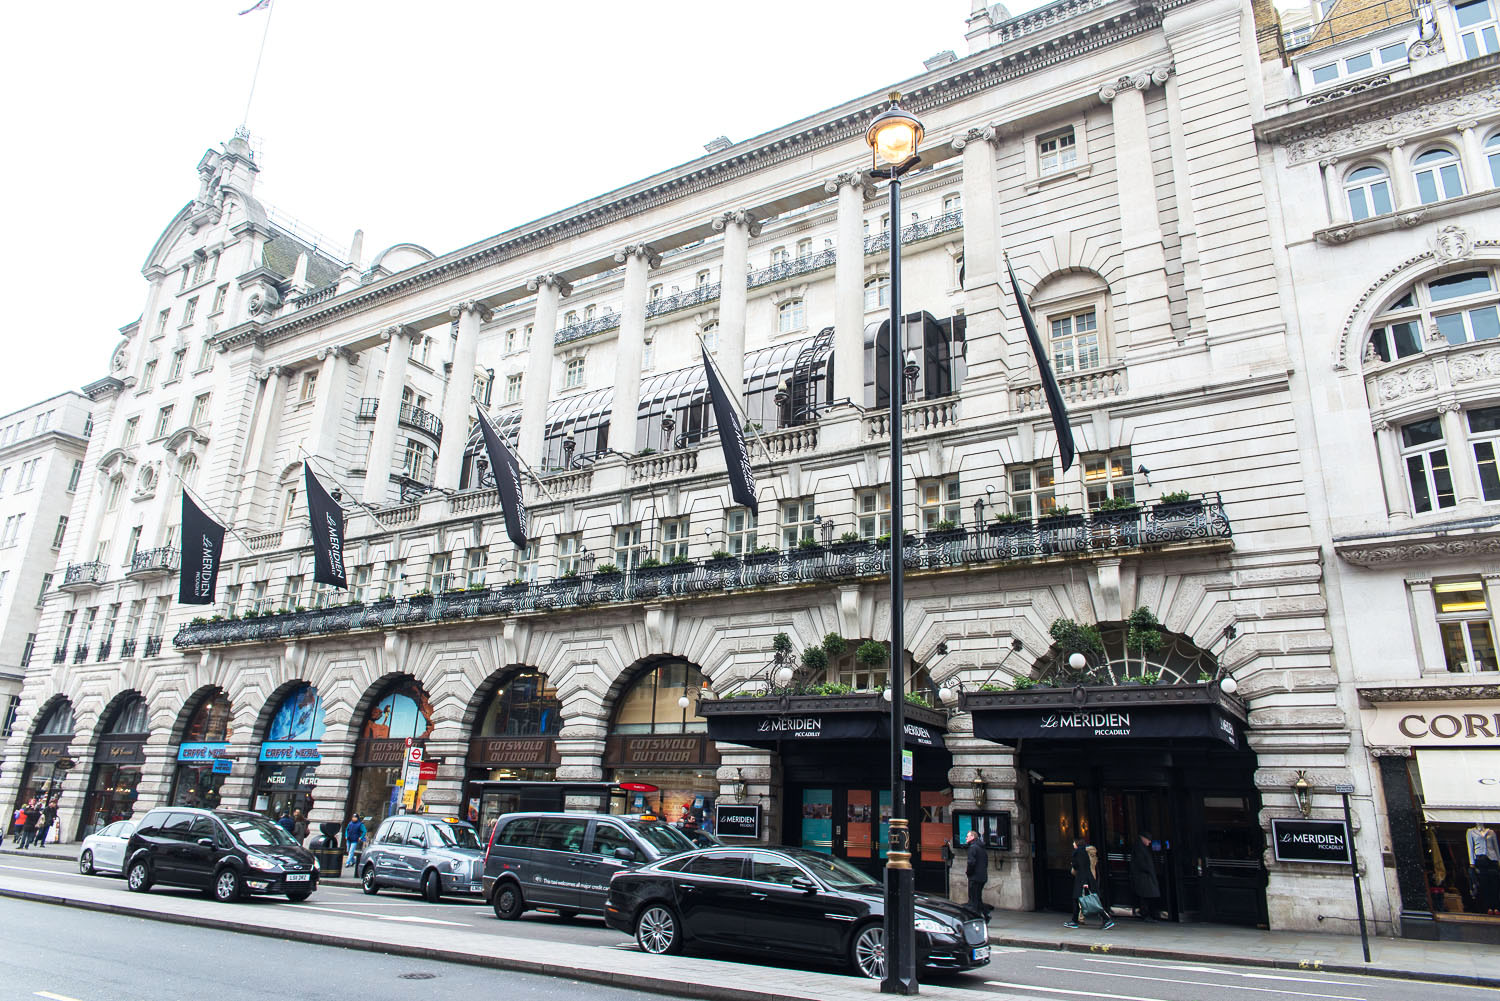 Day Stay Hotels London